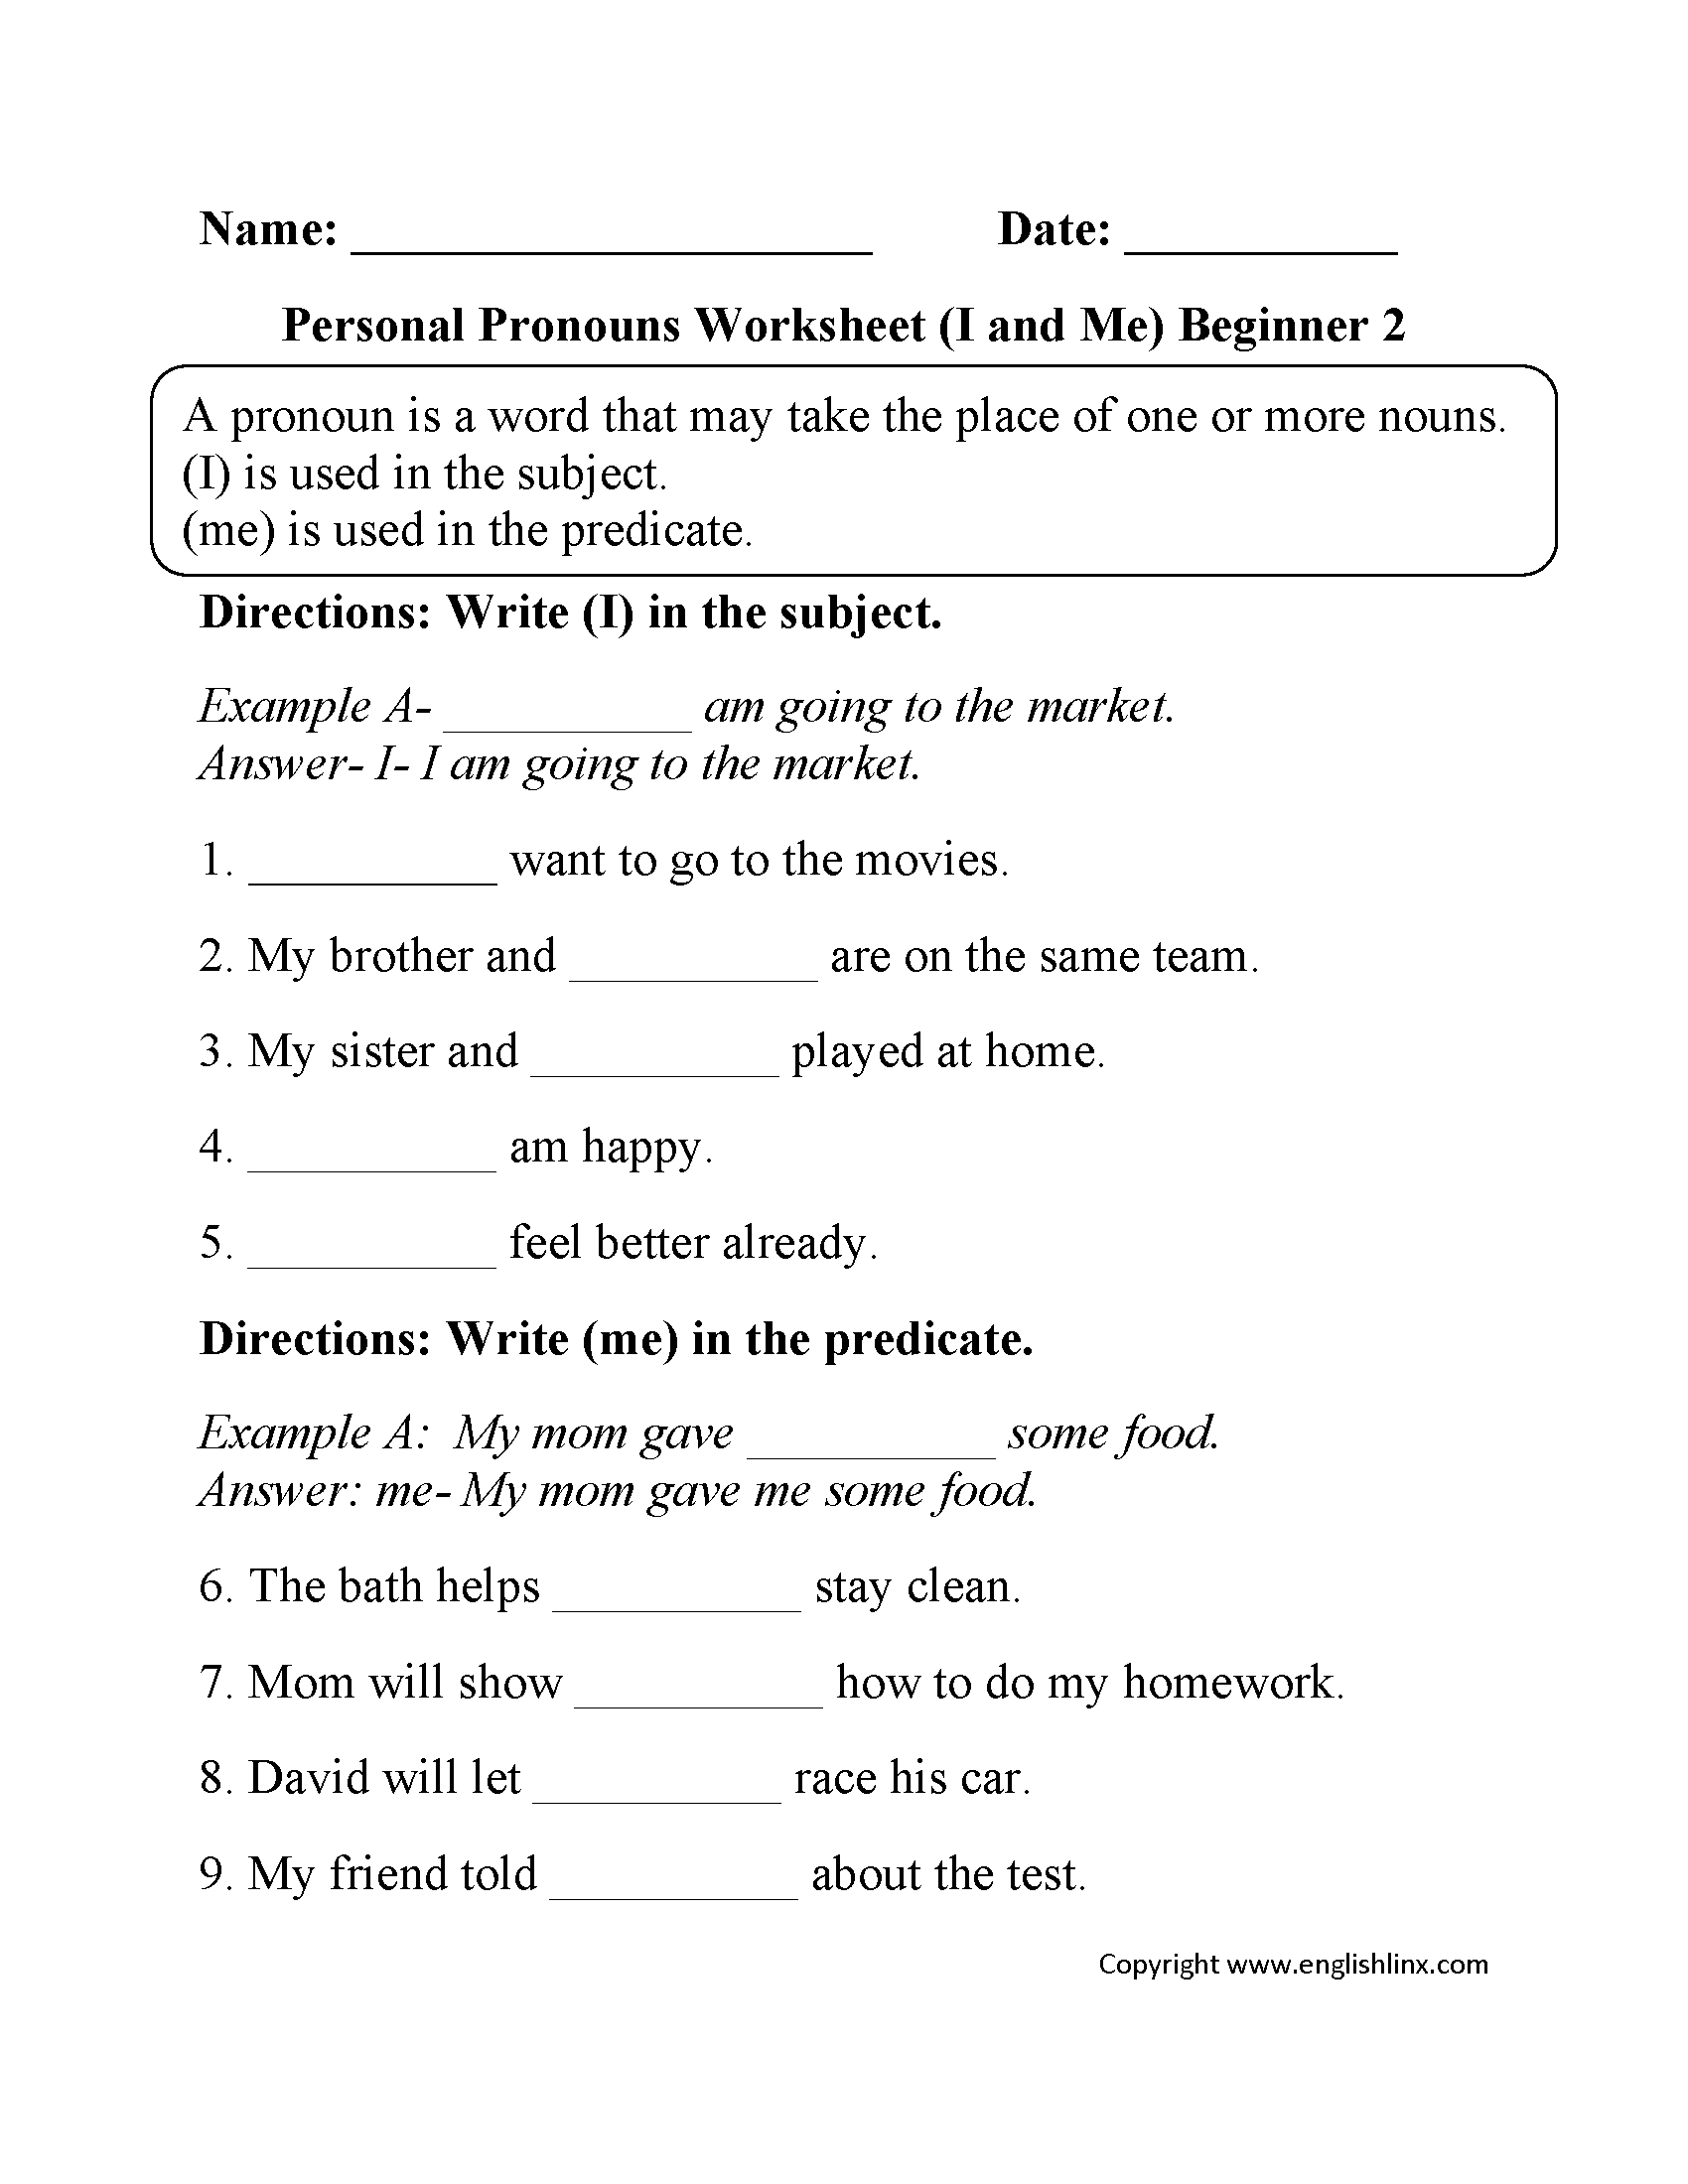 small resolution of Pronouns Worksheets   Personal pronouns worksheets